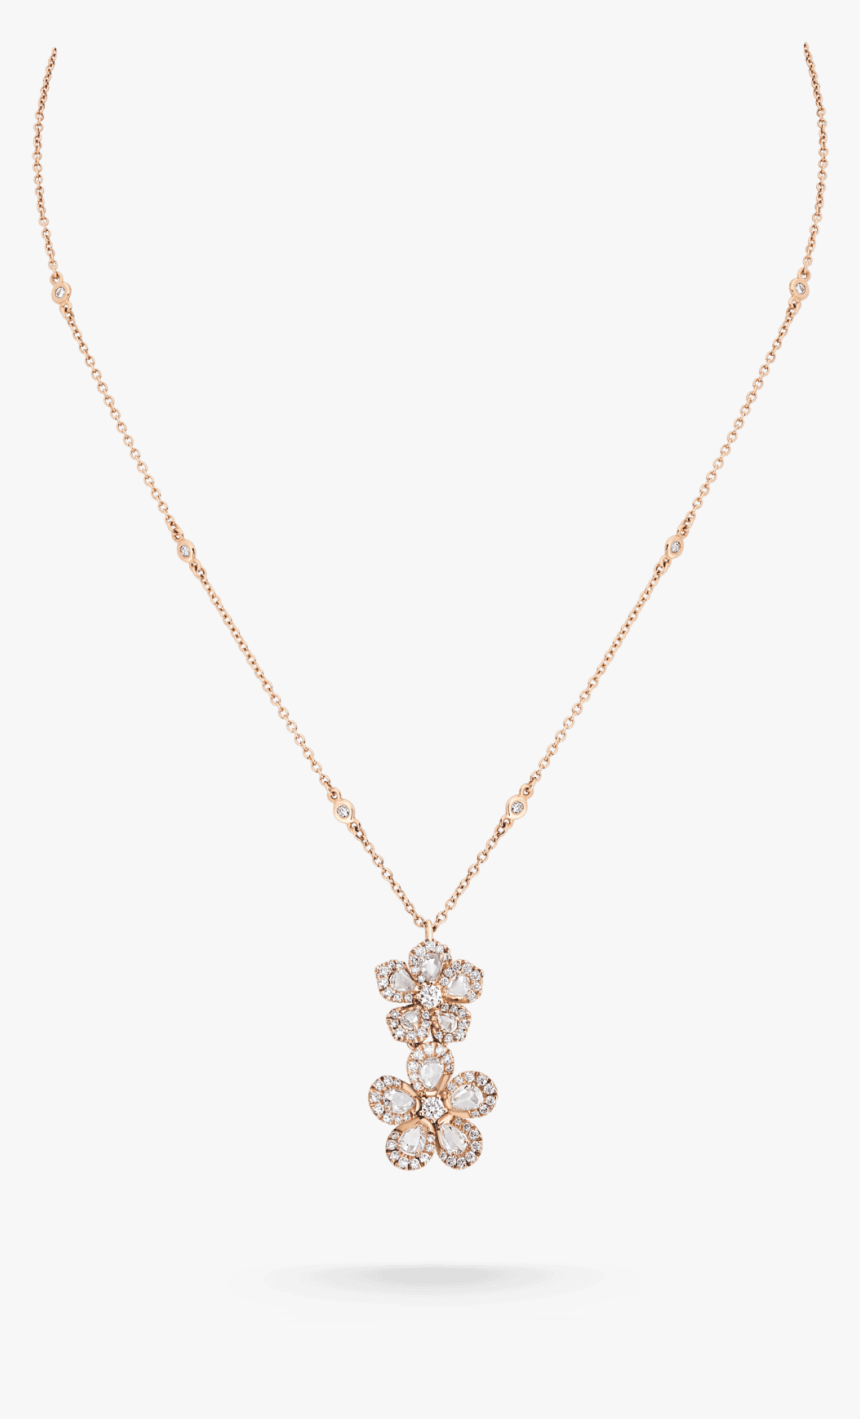 Ms 10 008 02 F1 Miss Daisy Necklace - David Morris Jewelry Pendant, HD Png Download, Free Download